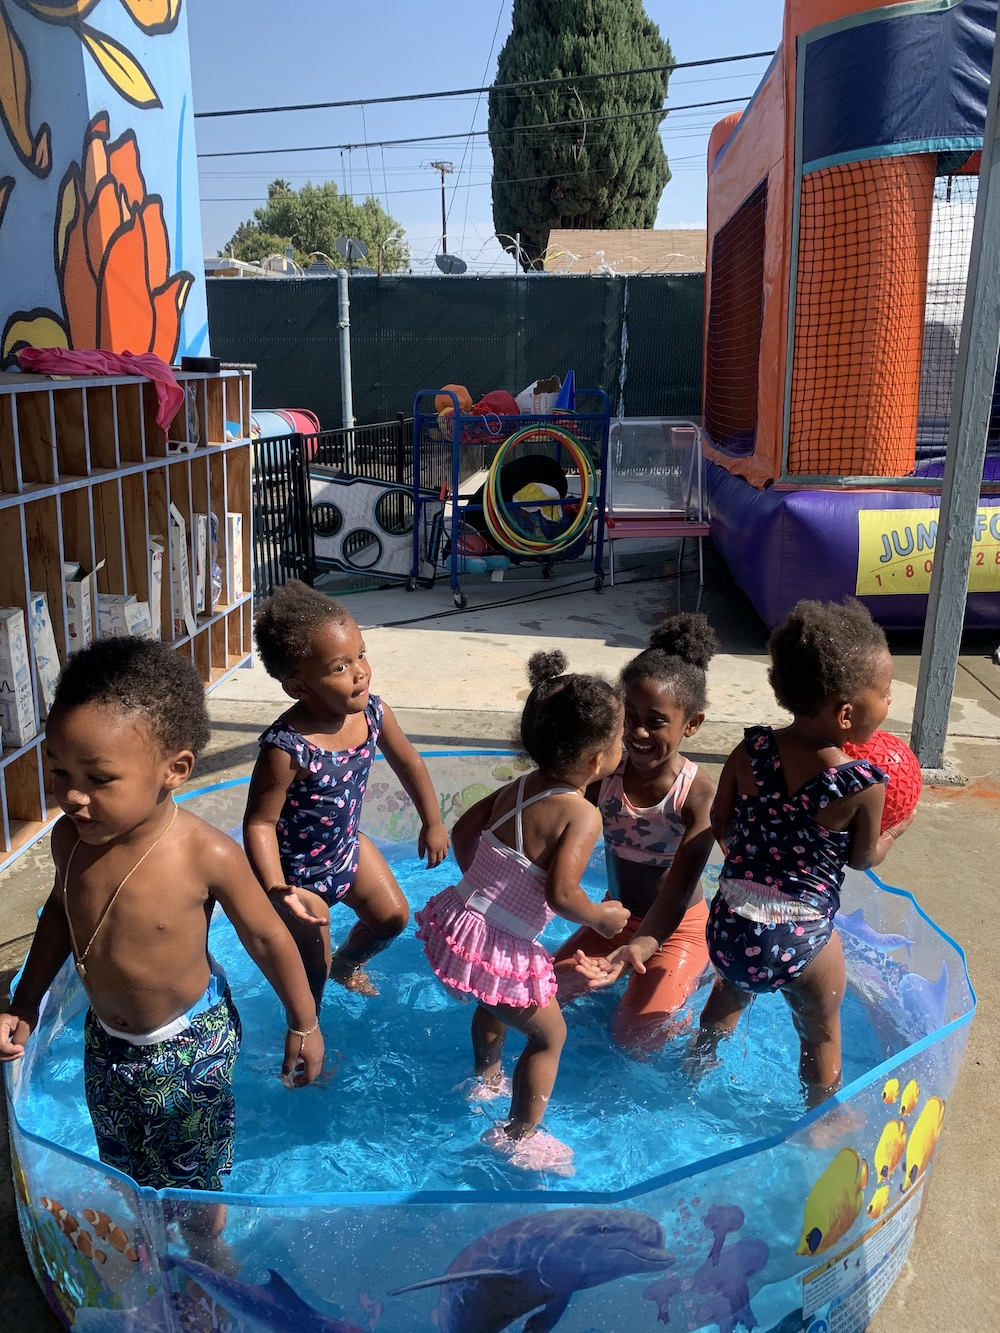 There are five toddlers in bathing suits playing in a kiddie pool.